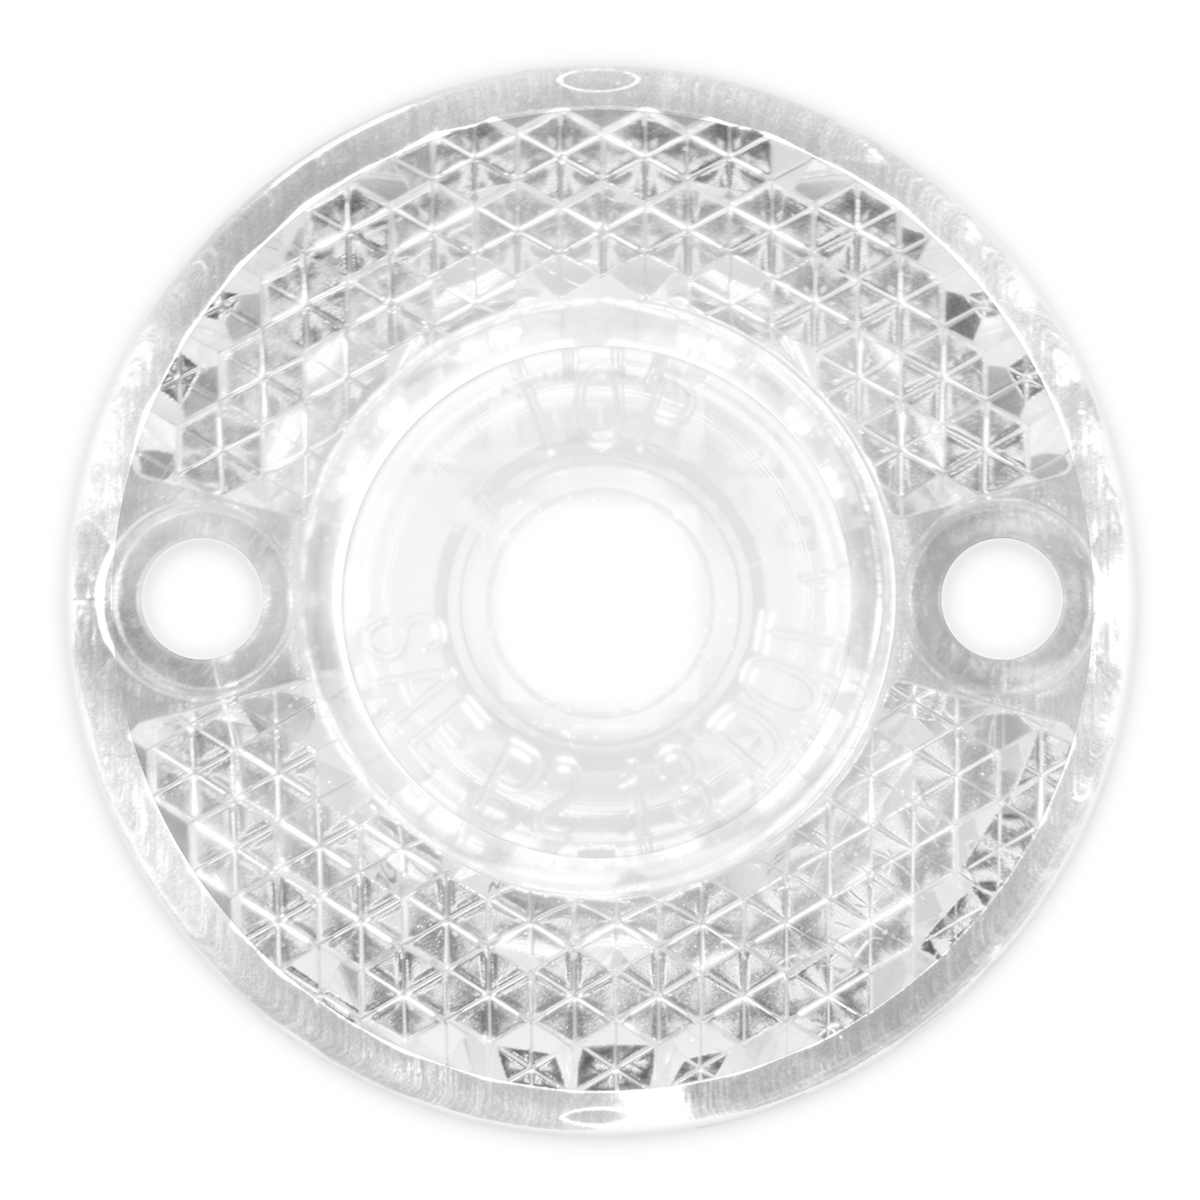 81784 Mini Surface Mount LED Light in White/Clear